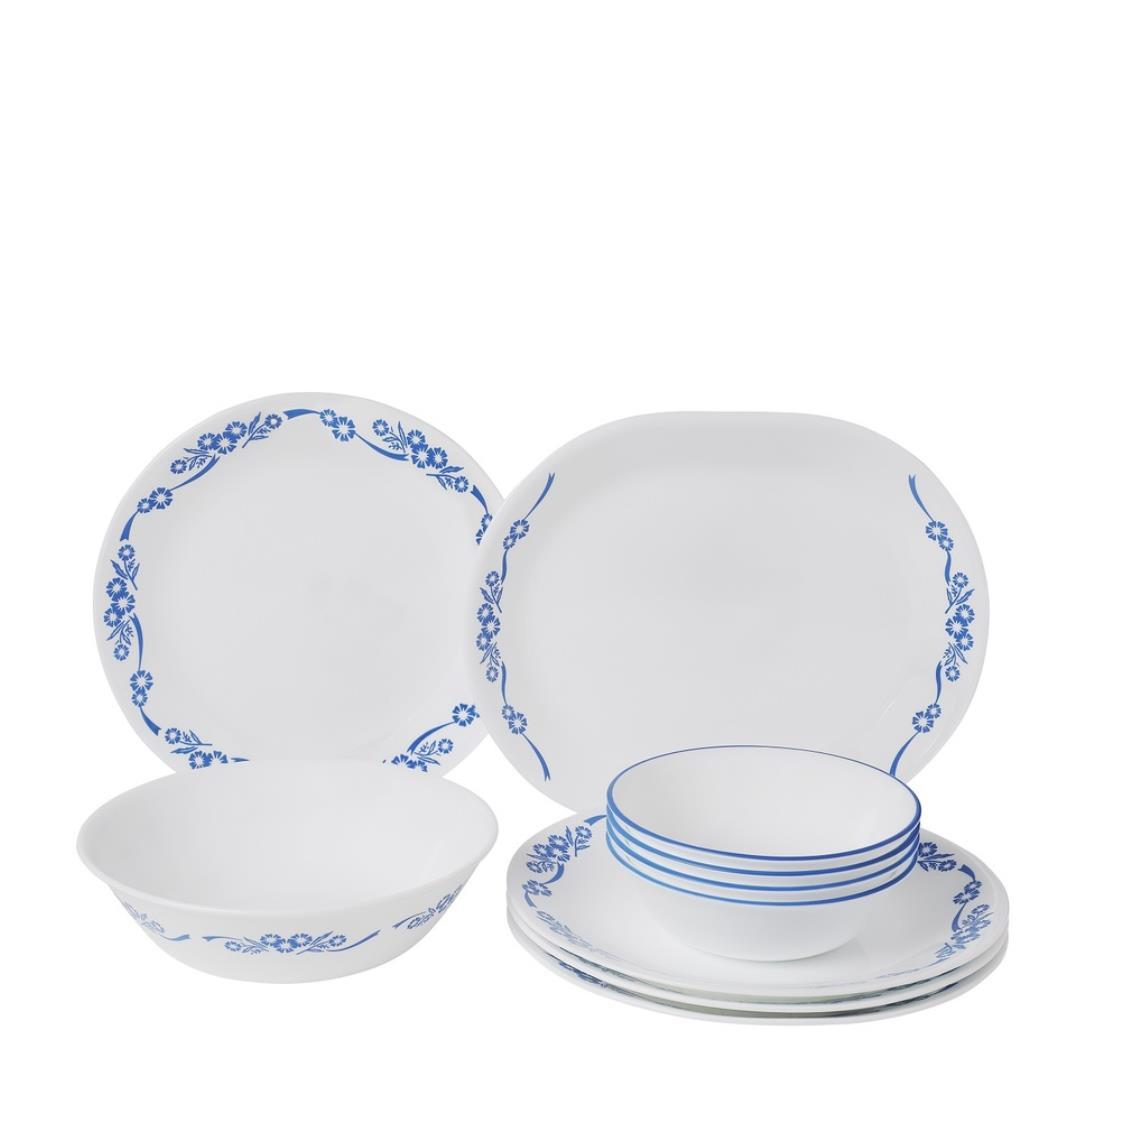 Corelle 10pc Dinner Set Blue Cornflower